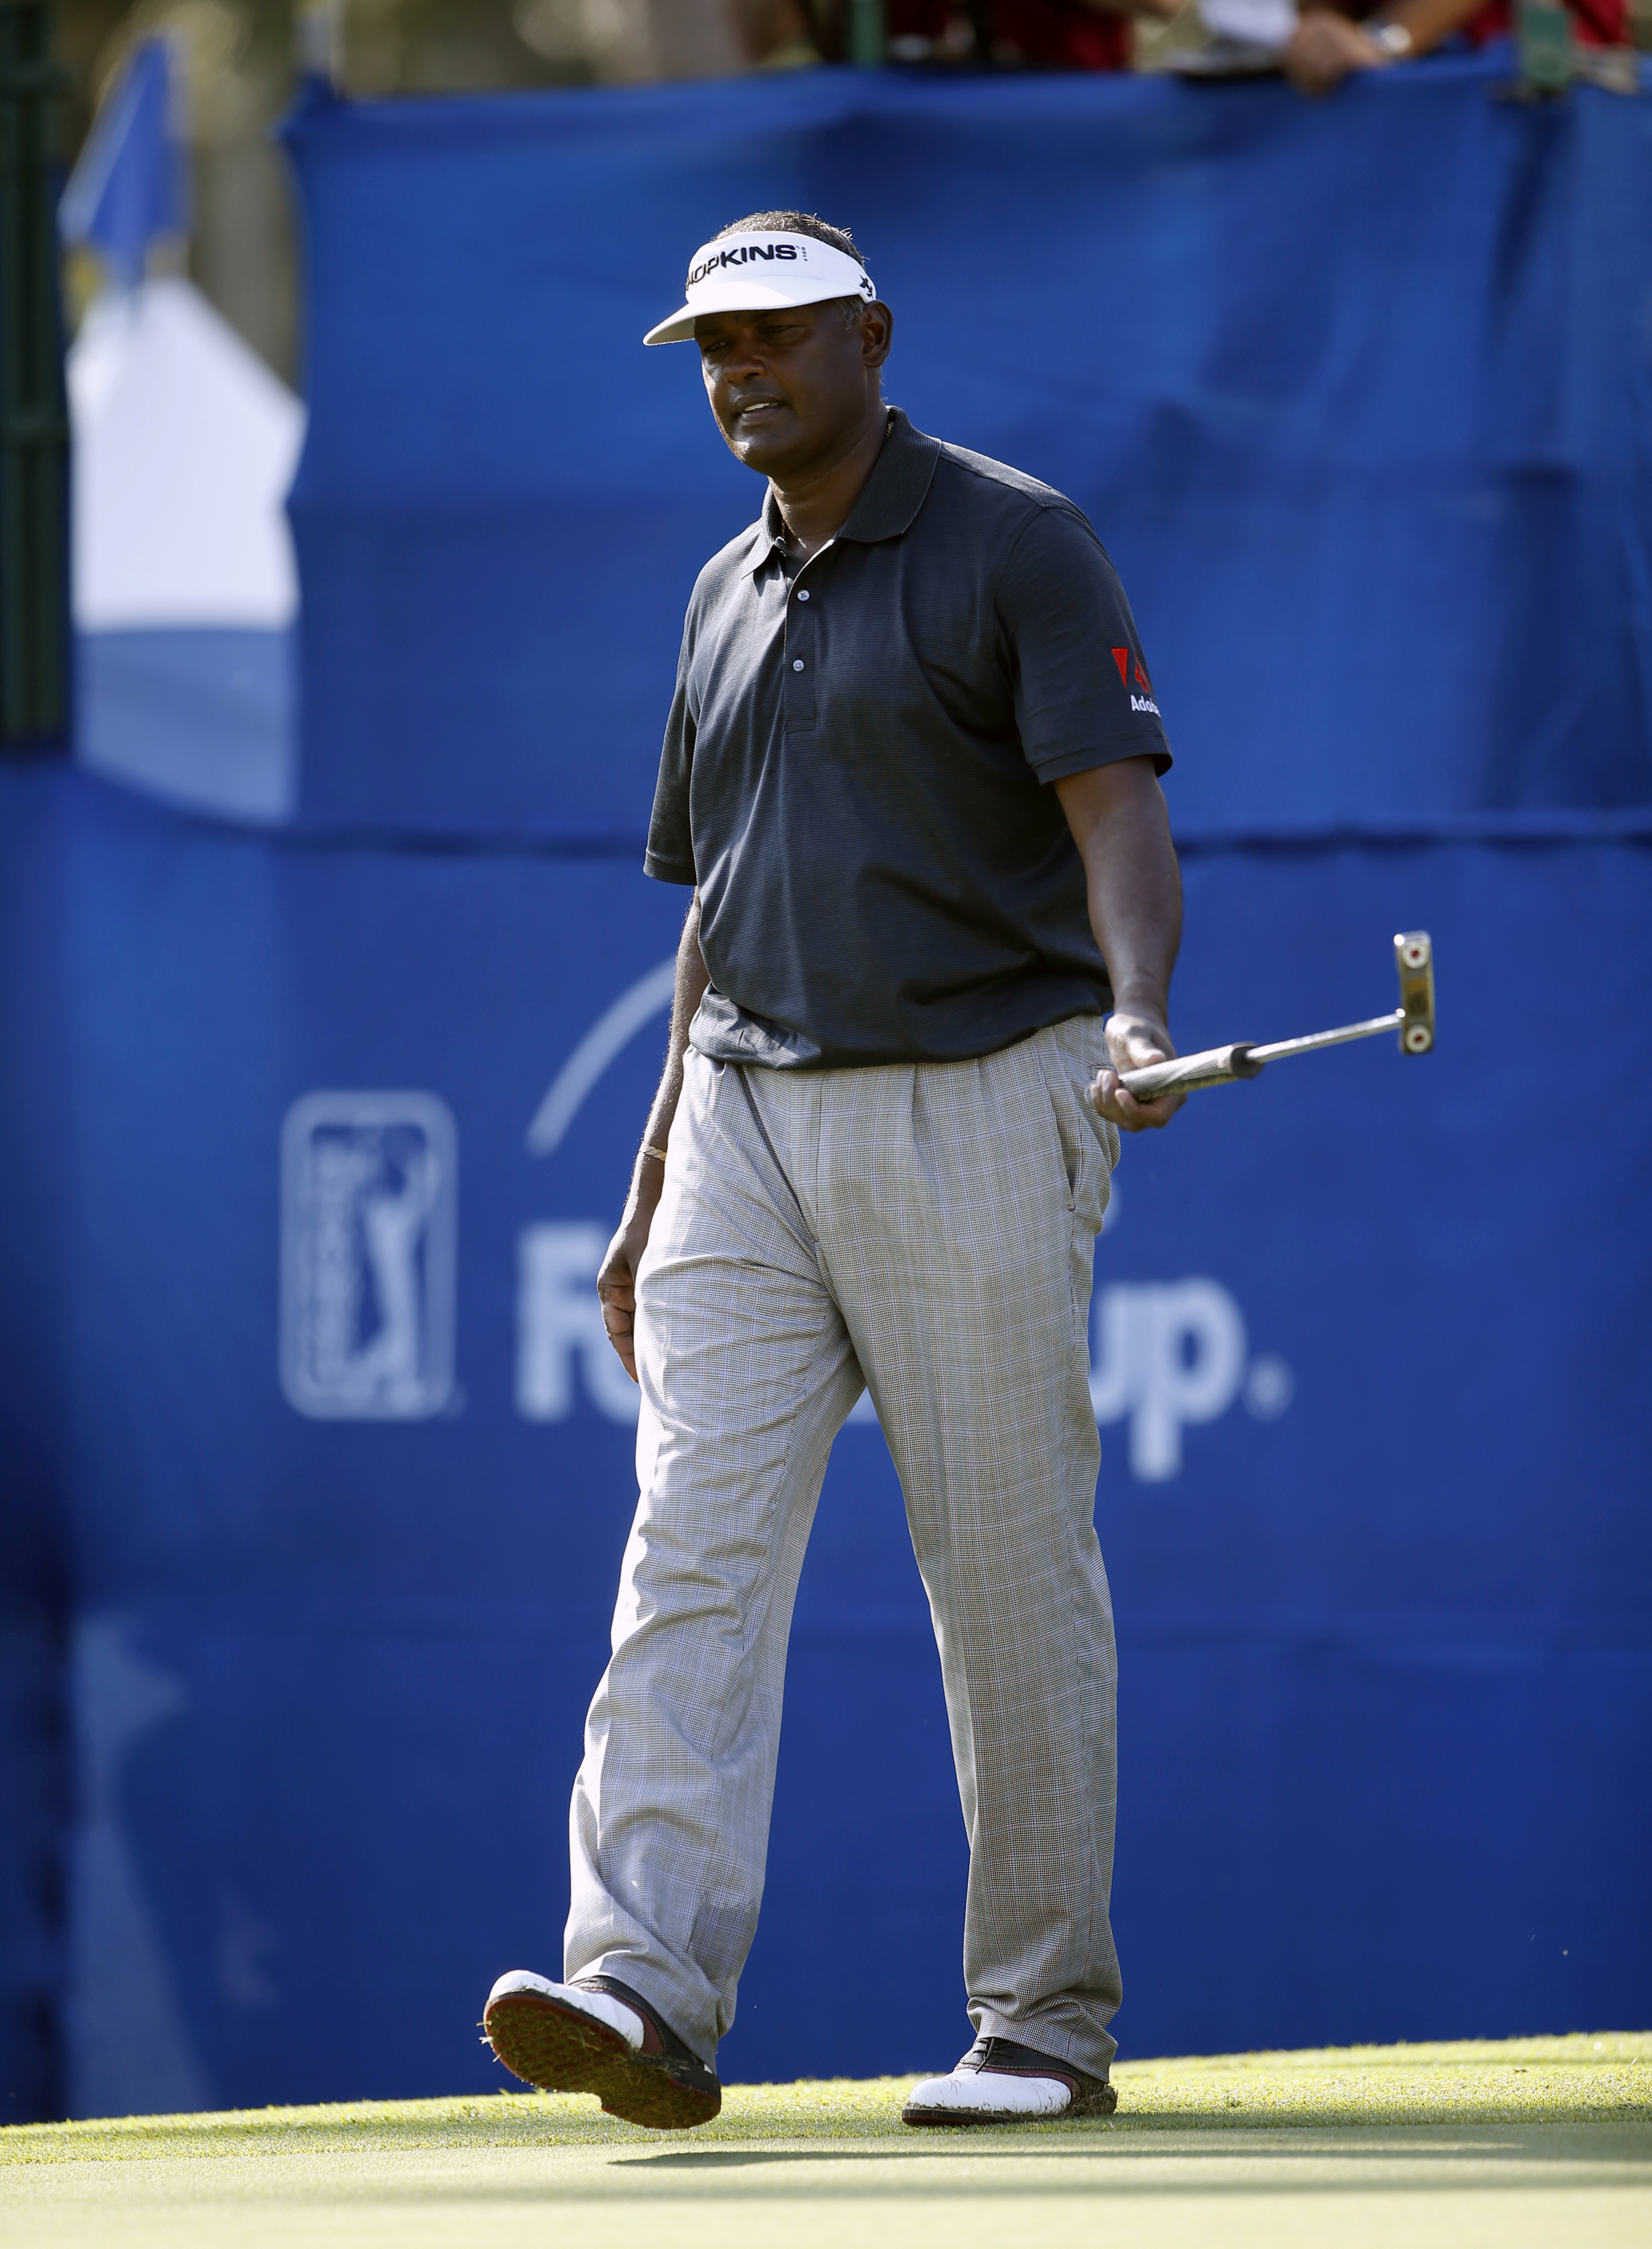 Vijay Singh, of the Fiji Islands, reacts to his putt on the 18th green during the first round of the Sony Open golf tournament, Thursday, Jan. 14, 2016, in Honolulu. (AP Photo/Marco Garcia)